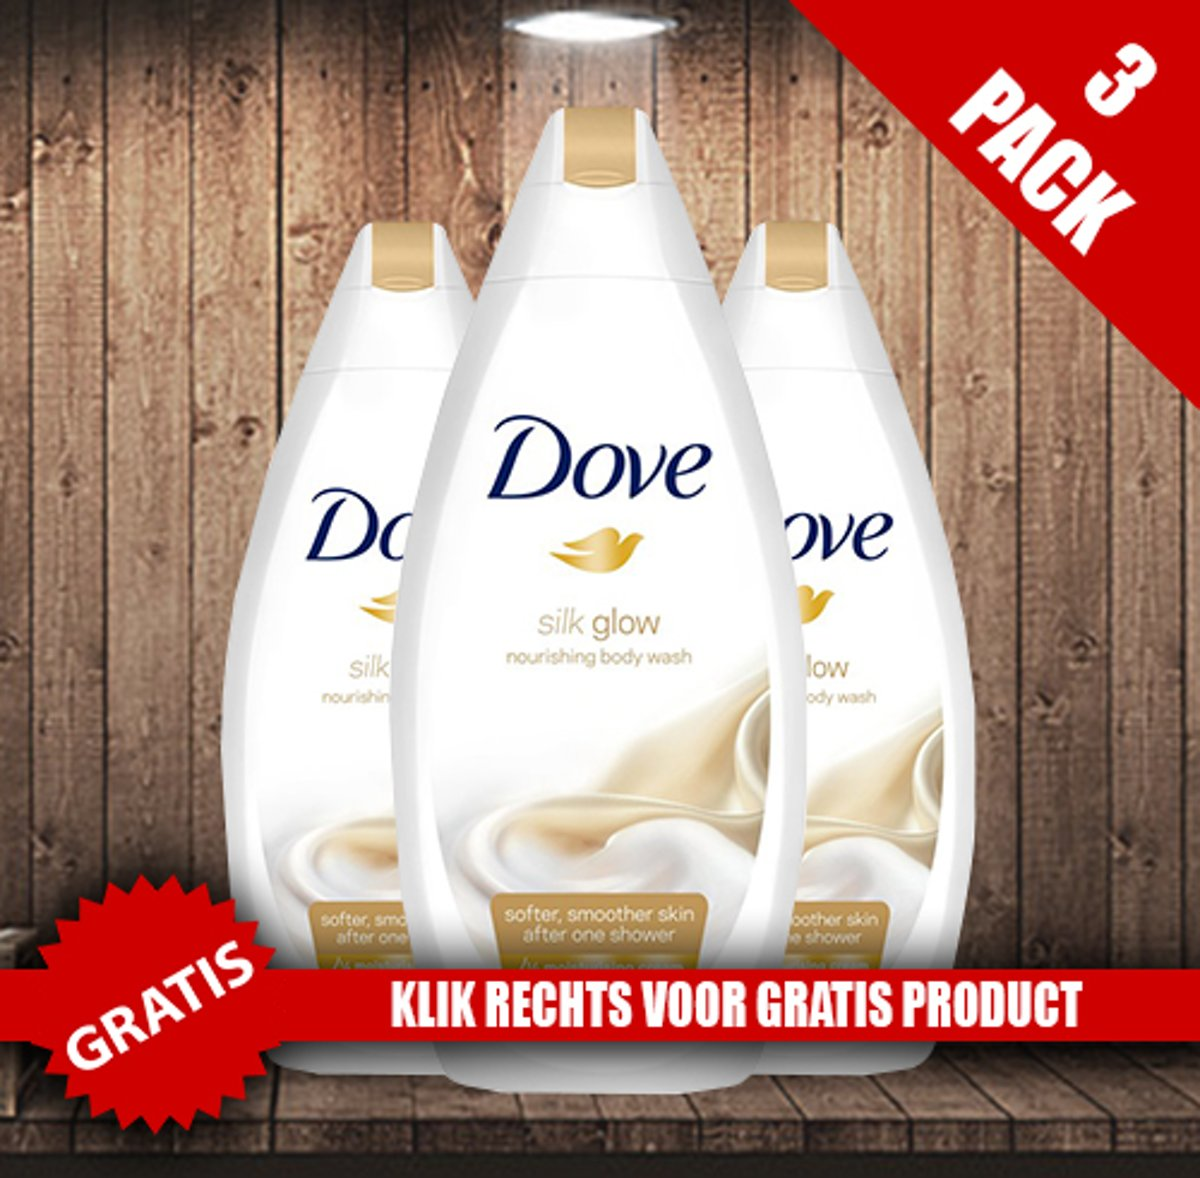 Dove Silk Glow Douchecreme 750 ml - 3 Pack Voordeelverpakking + Oramint Oral Care Kit 6 Delig